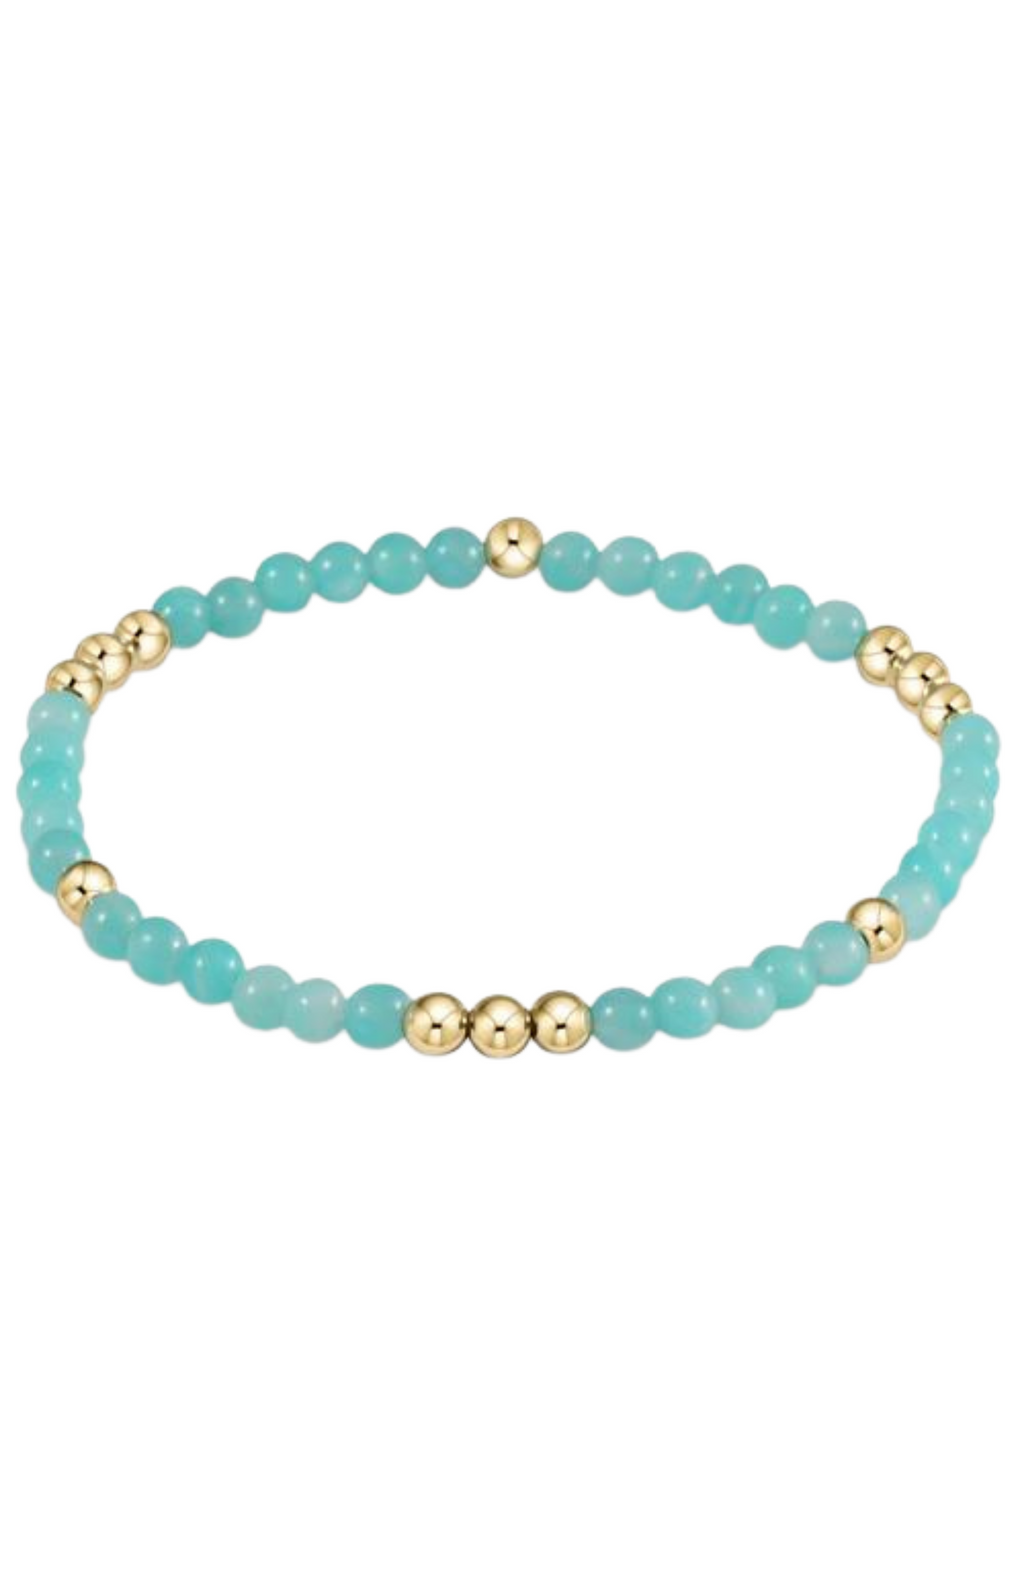 Enewton - Worthy Amazonite Bracelet 4mm